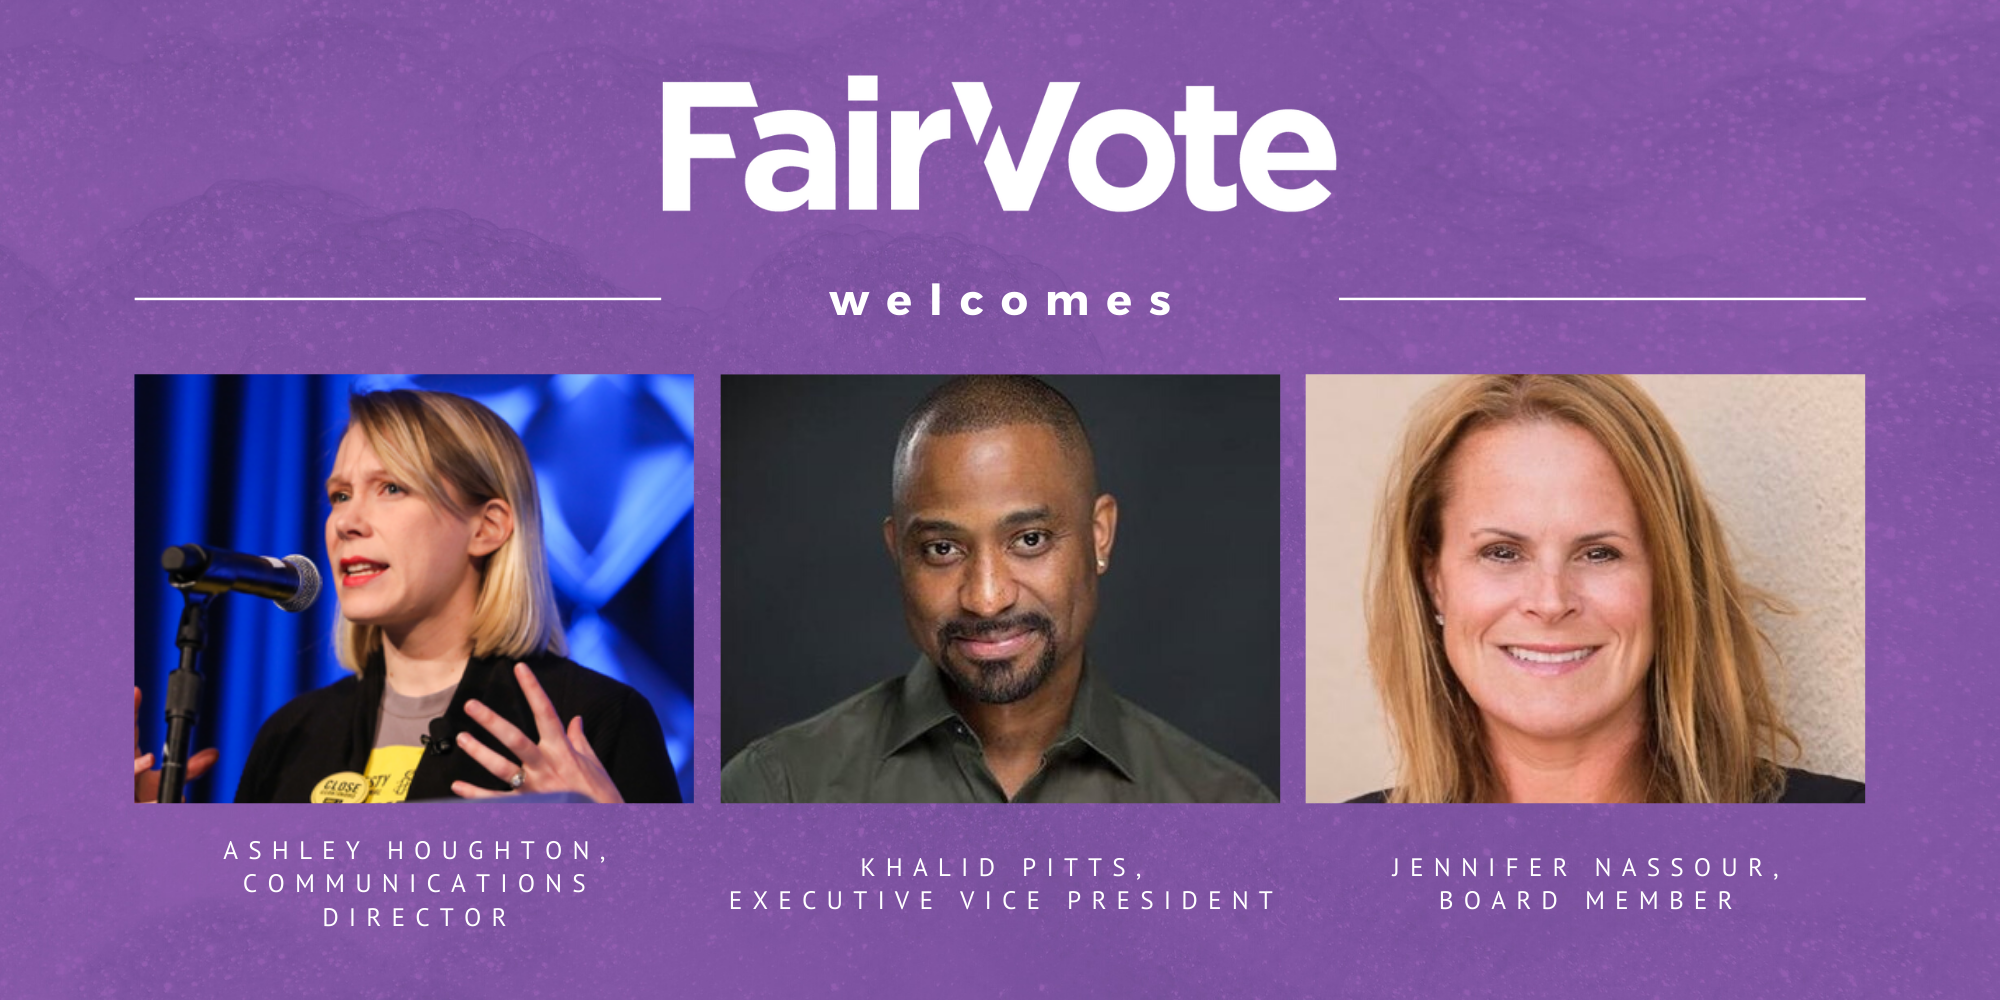 Welcome to our New FairVote Leadership